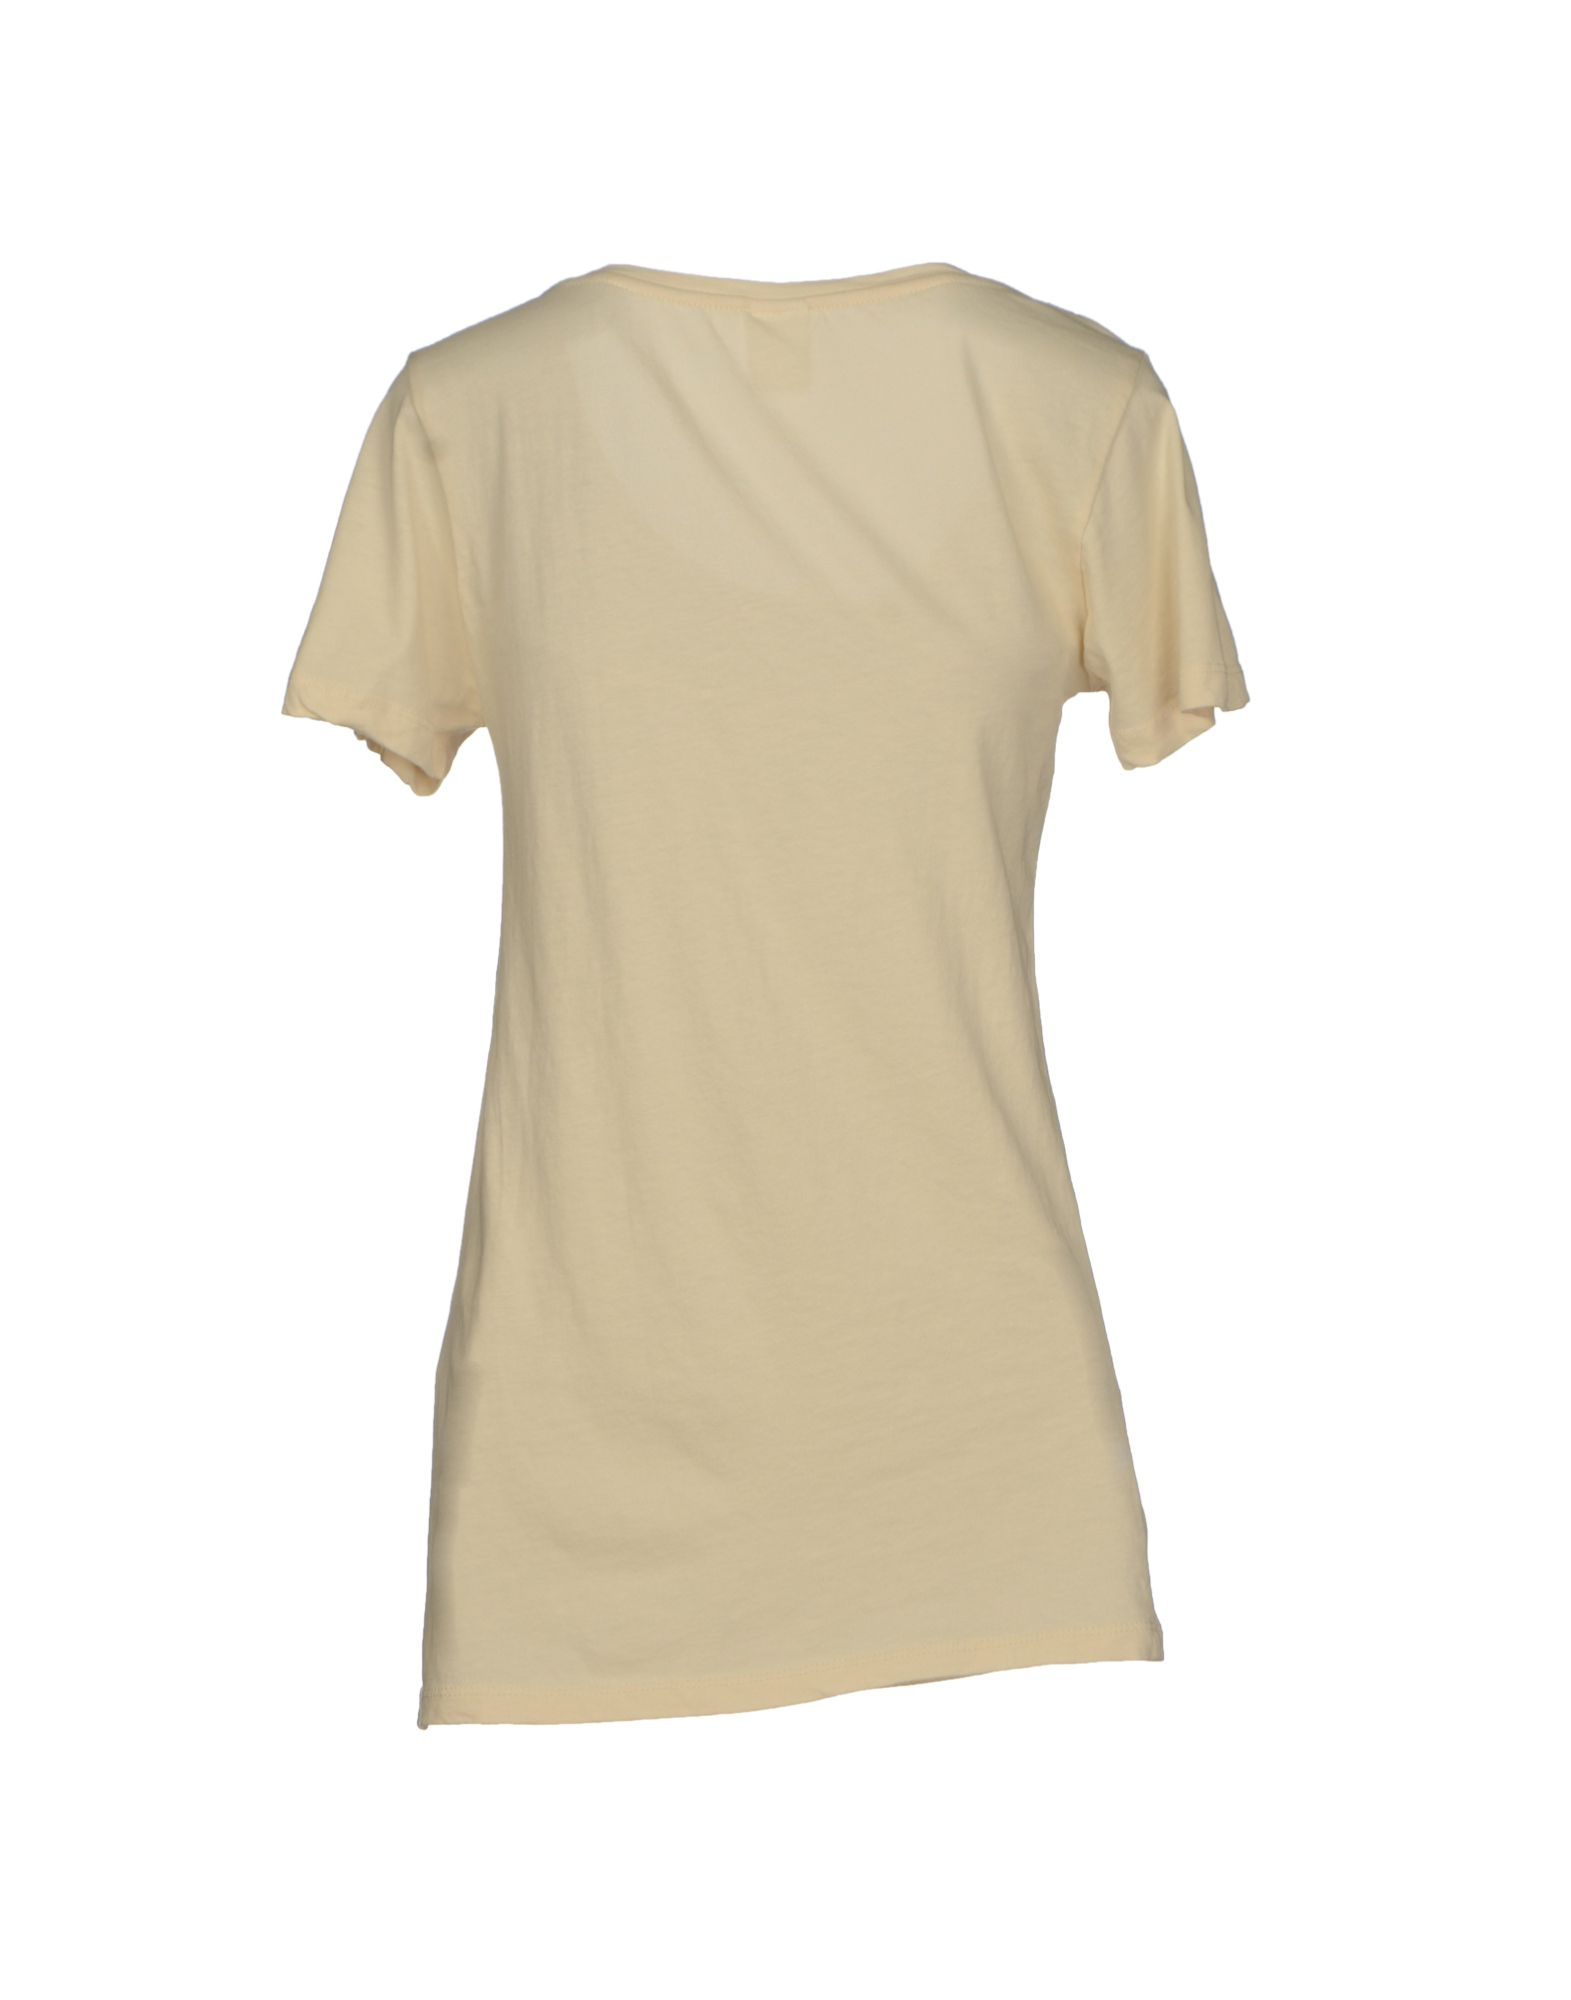 vero moda t shirt in natural lyst. Black Bedroom Furniture Sets. Home Design Ideas